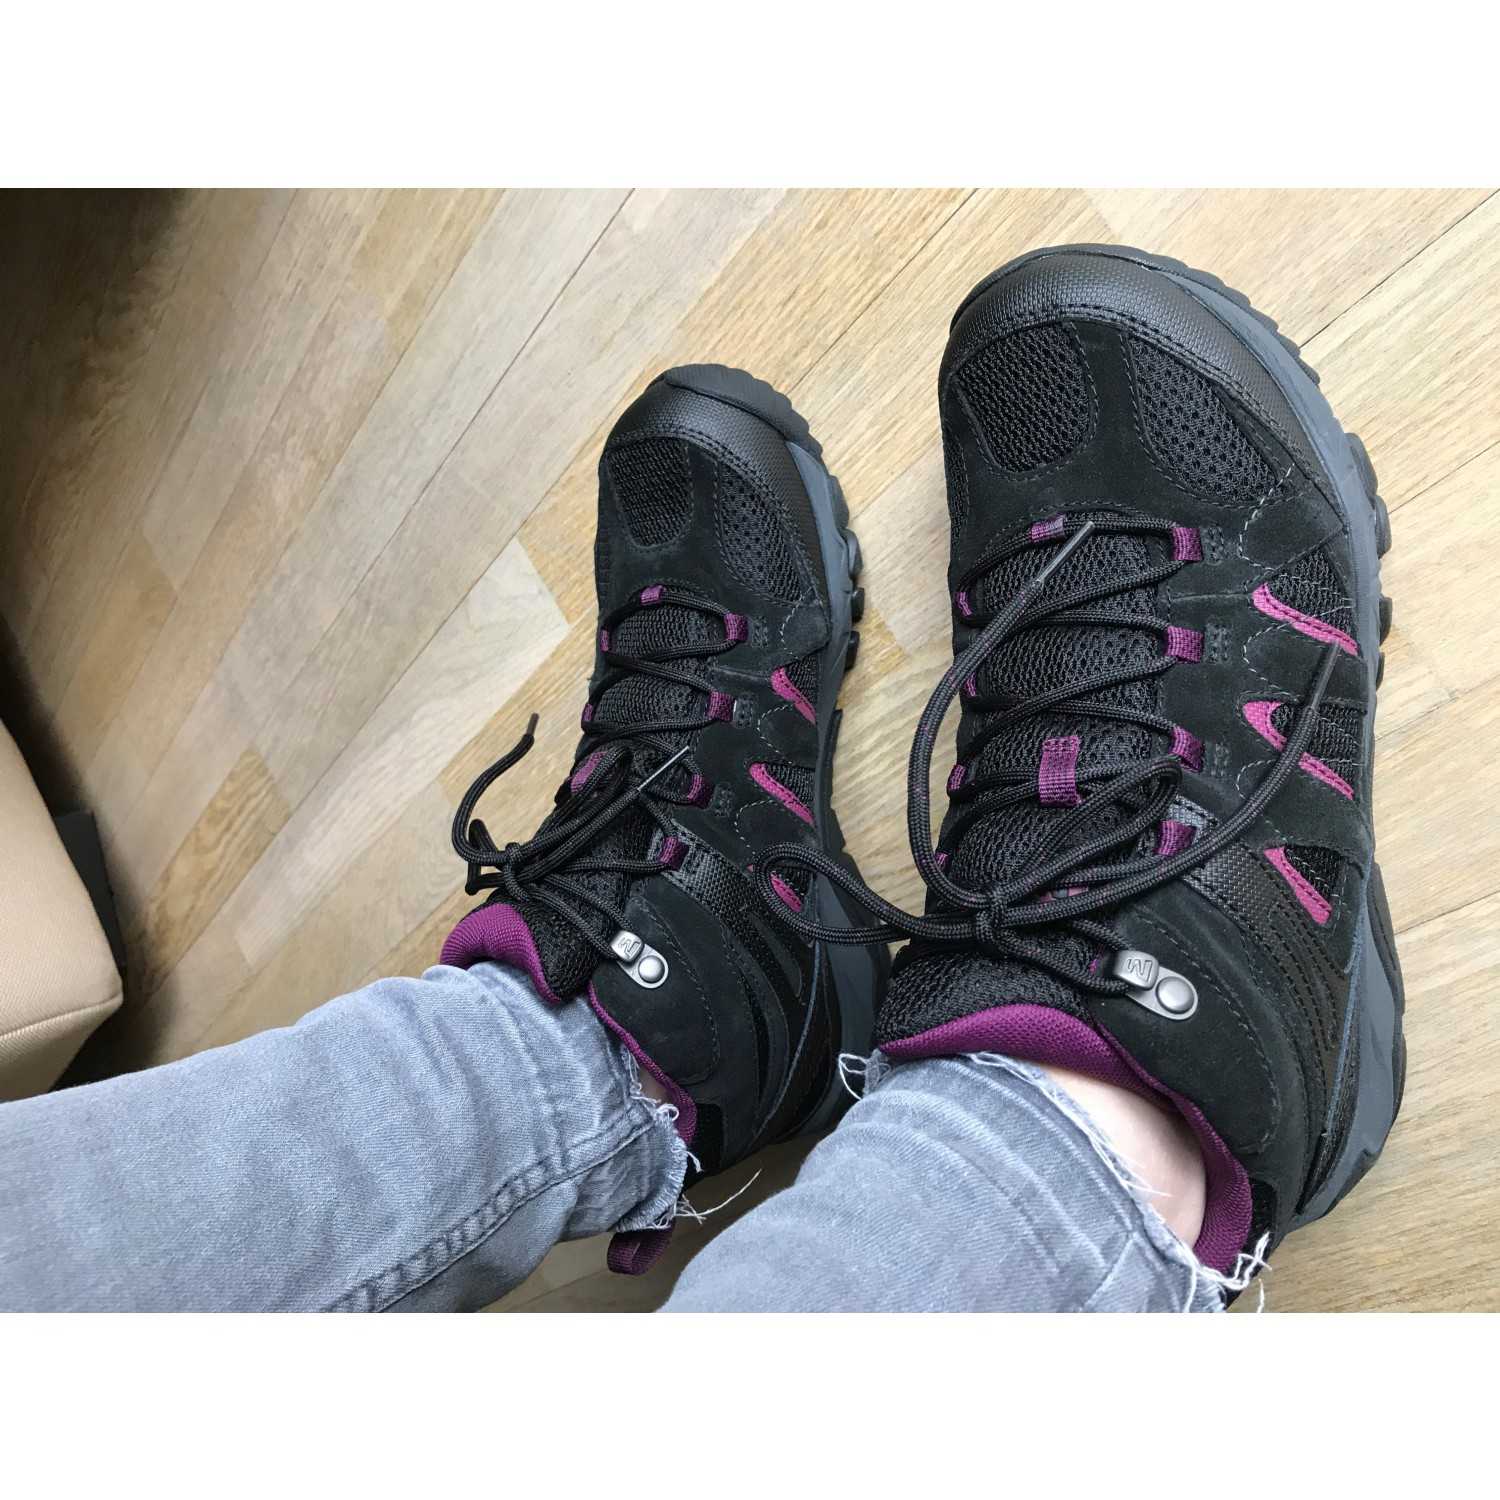 Black Merrell Womens Outmost Vent Mid GTX Walking Boot